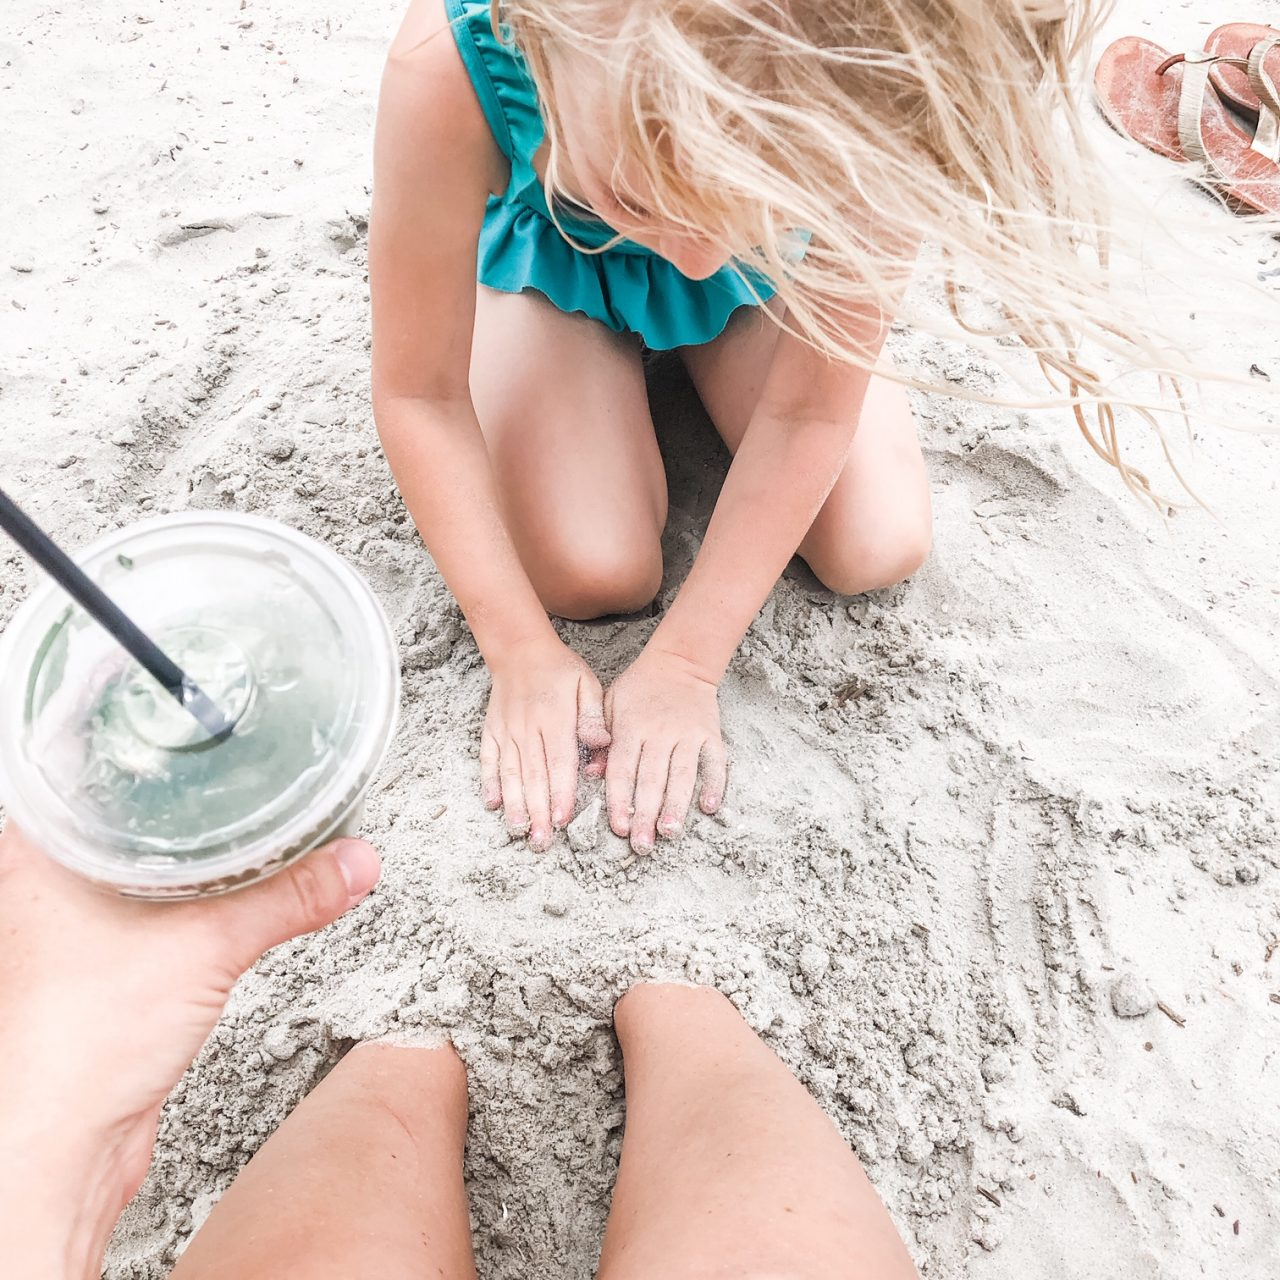 MUST HAVE BEACH FINDS